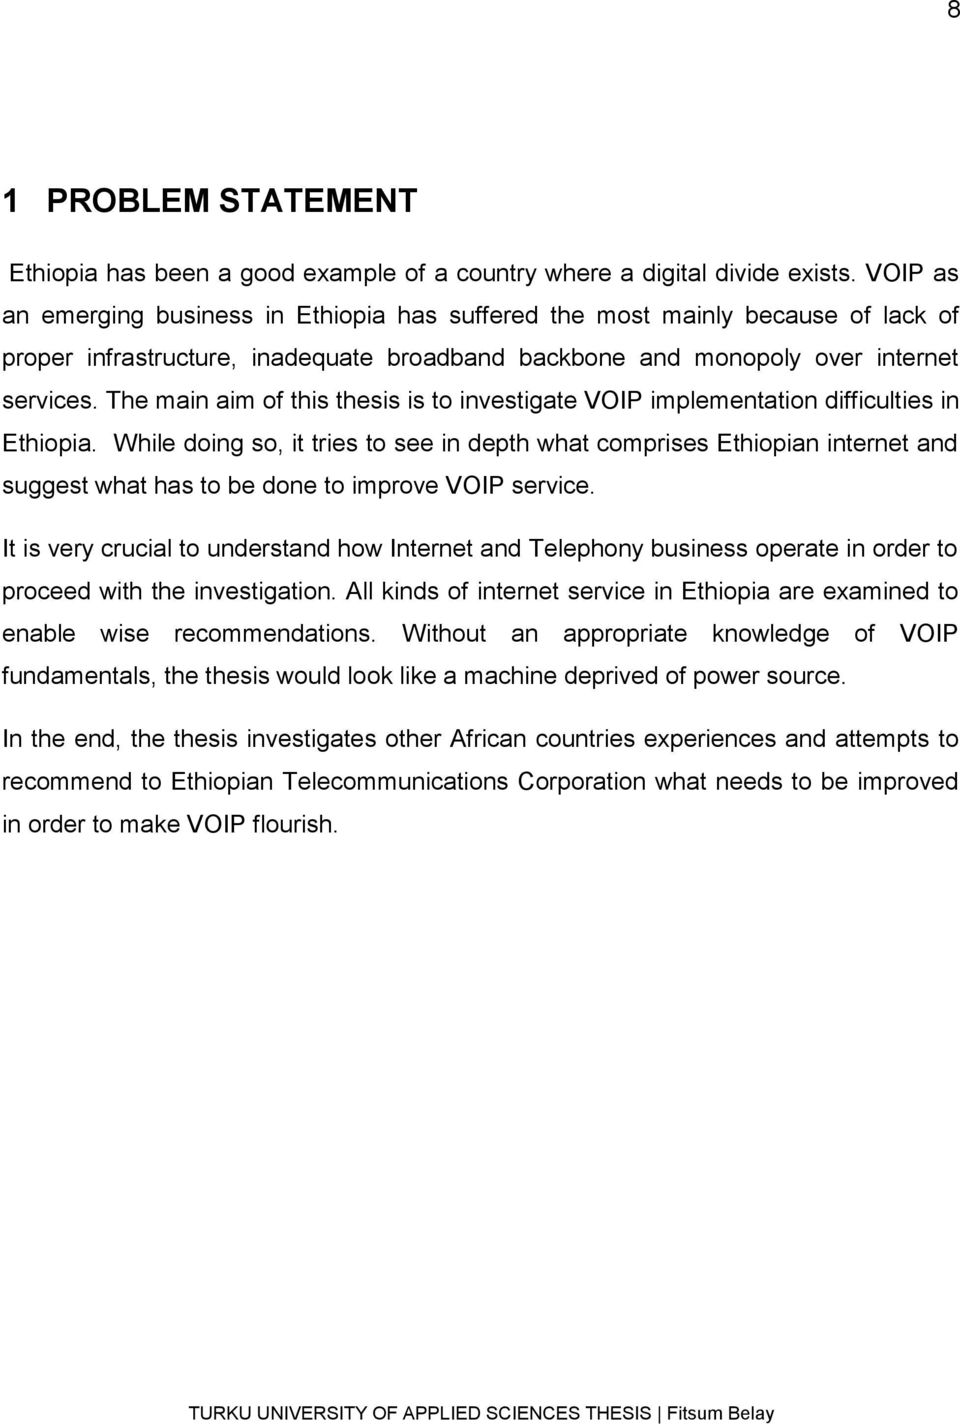 The main aim of this thesis is to investigate VOIP implementation difficulties in Ethiopia.